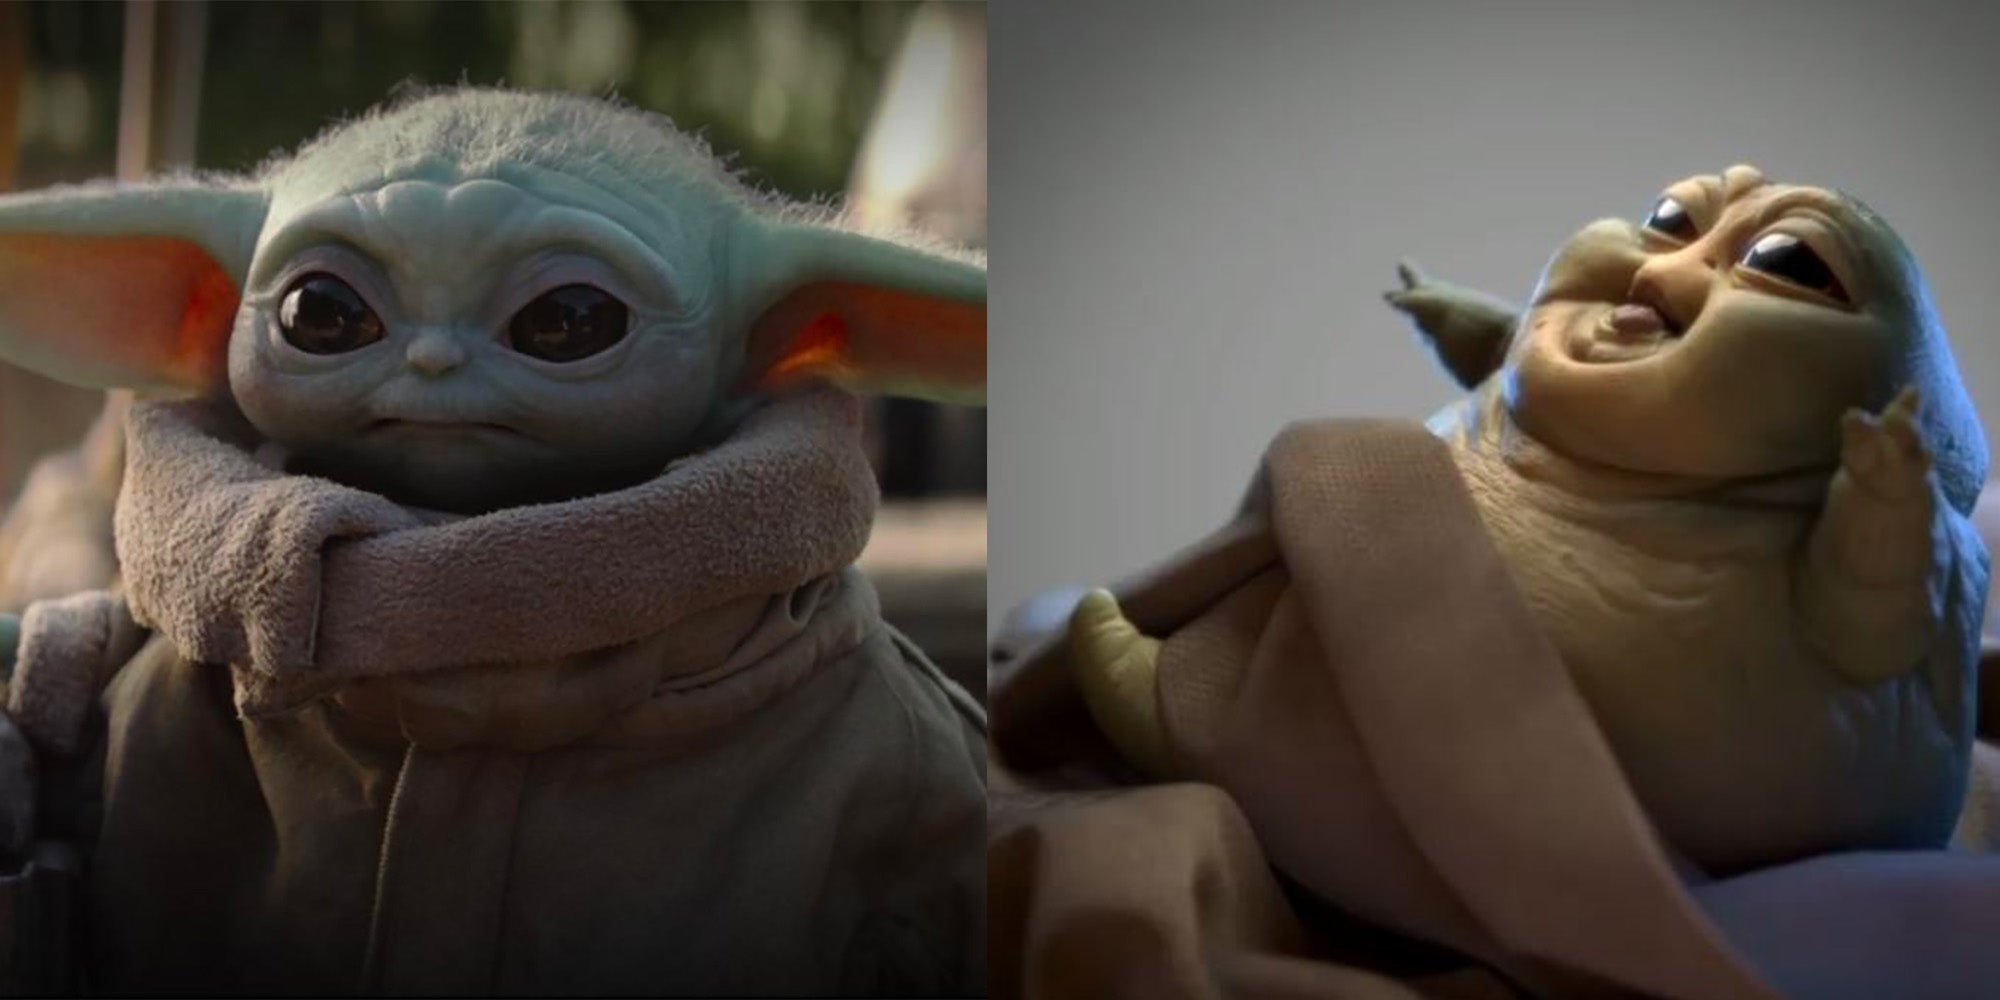 Baby Jabba Is The Latest Cute Star Wars Meme To Take The Internet By Storm Indy100